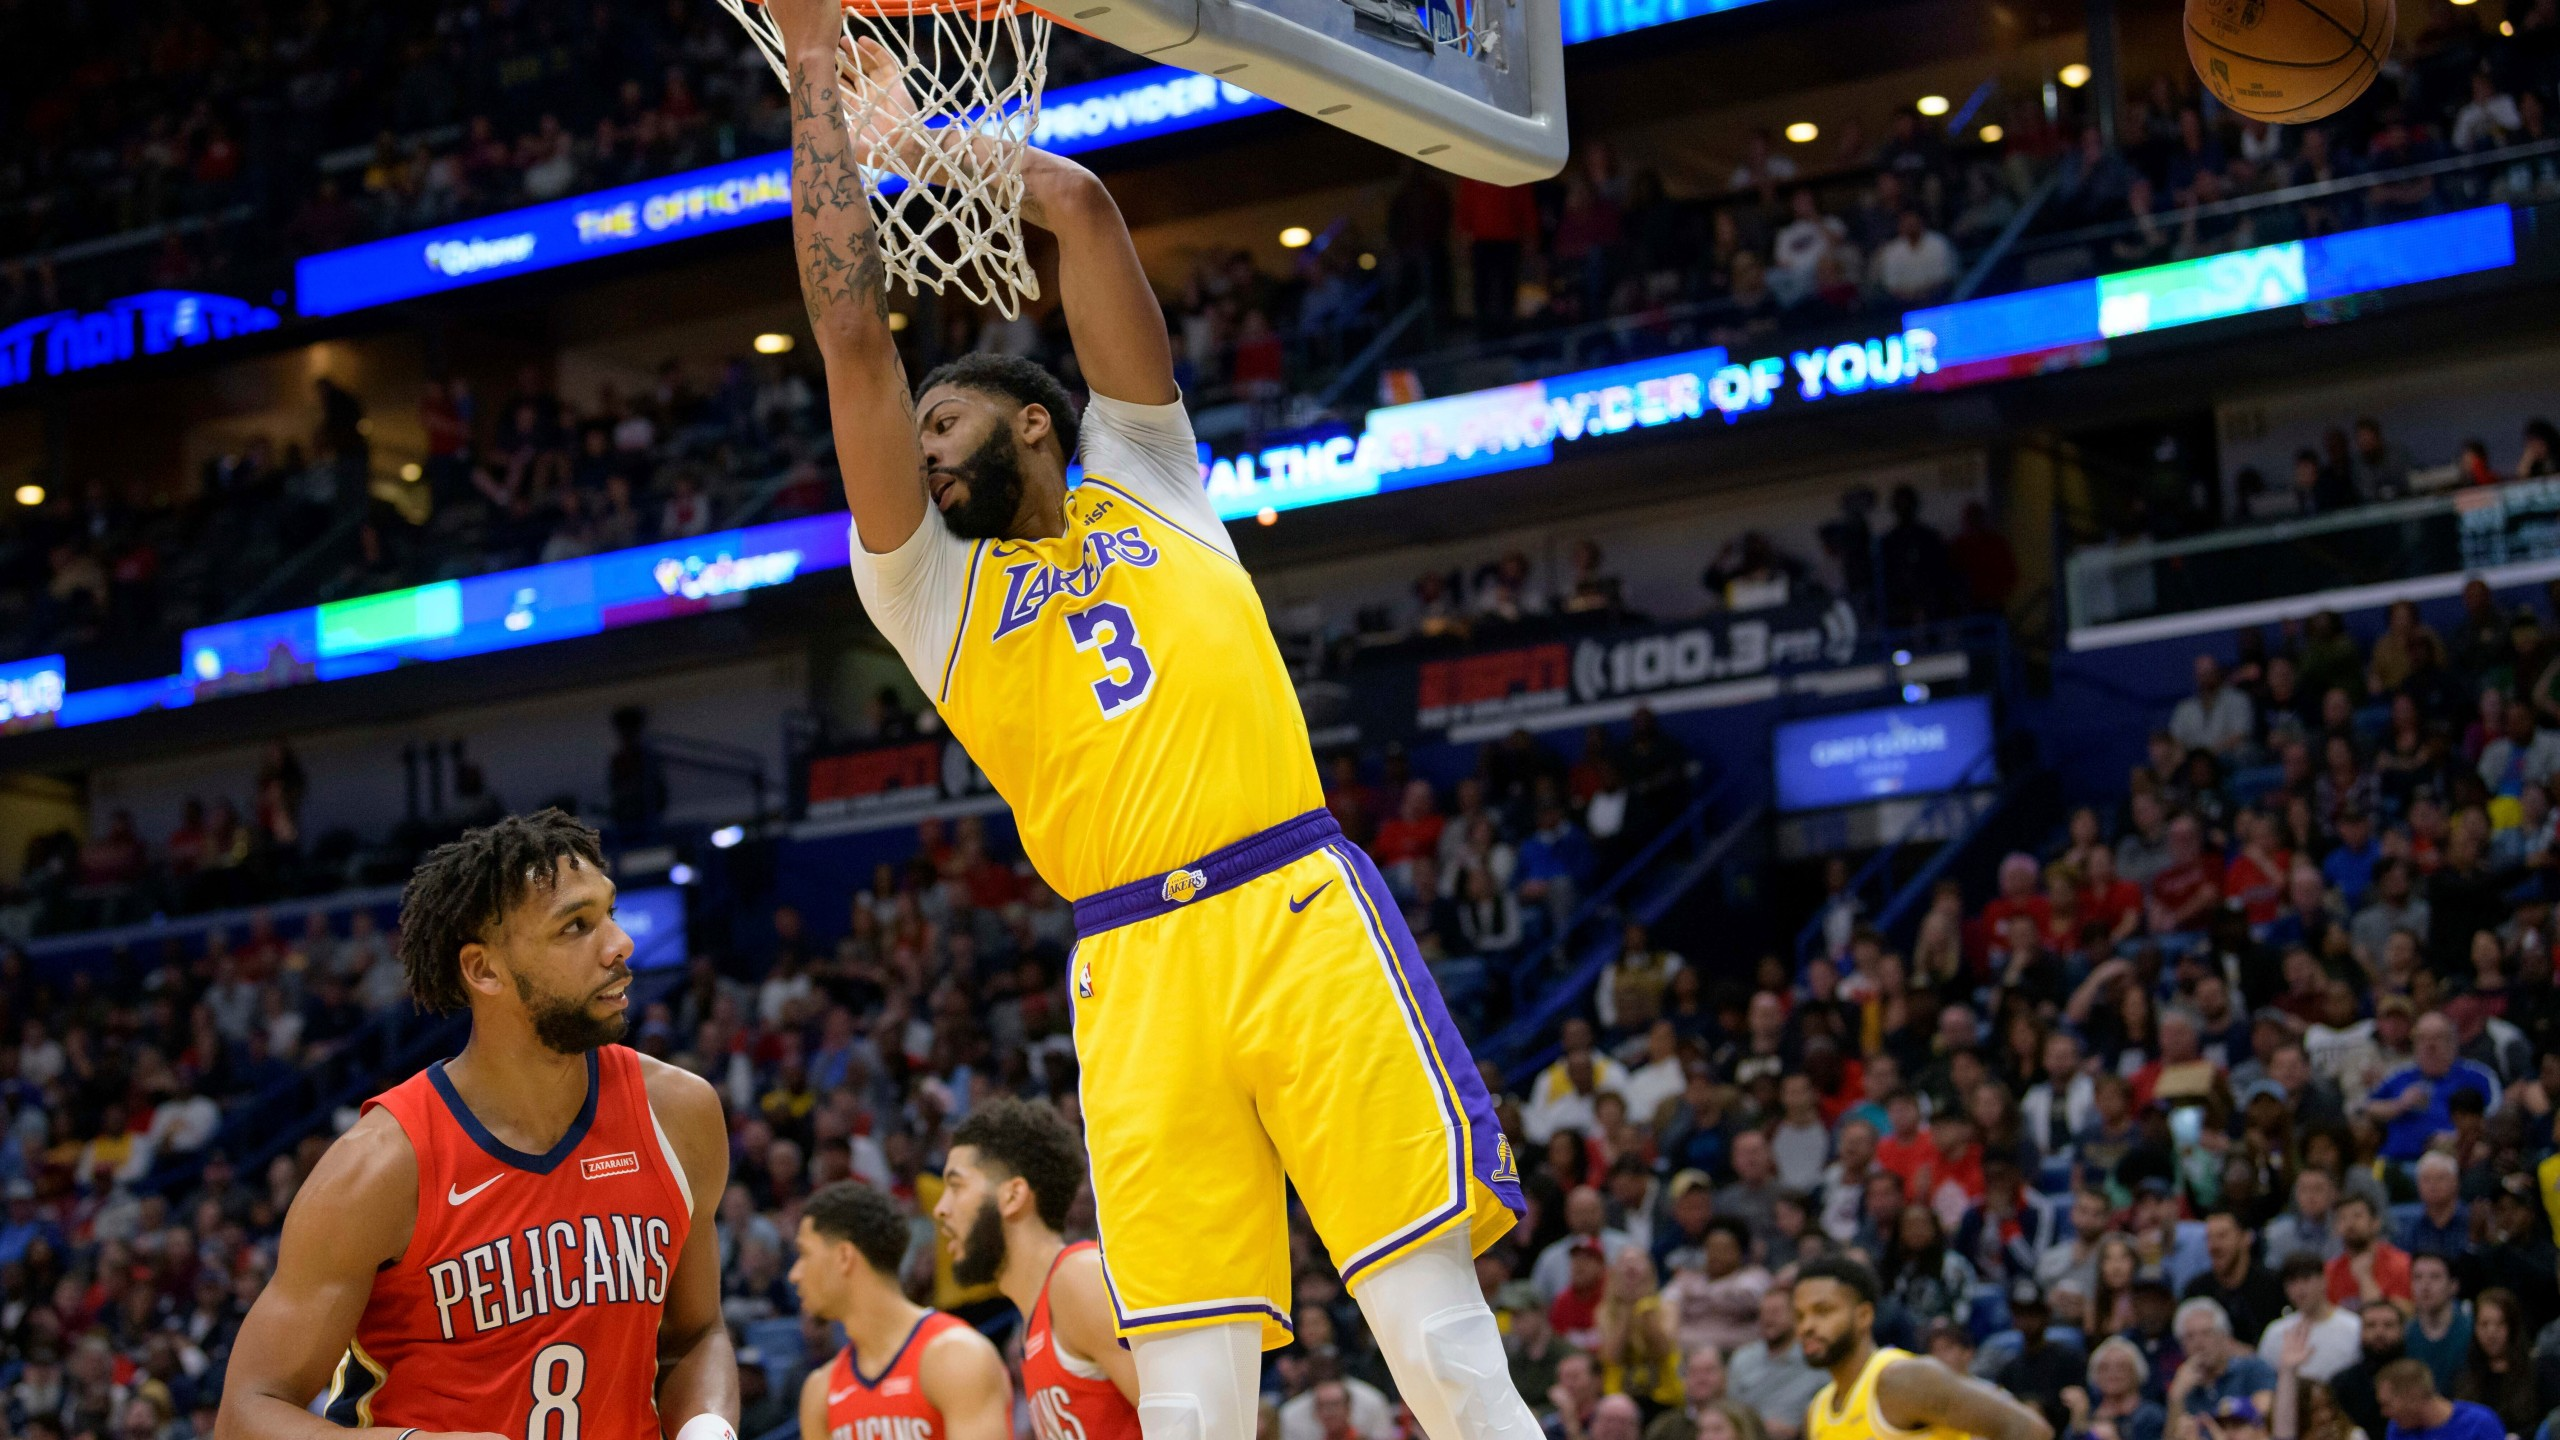 Lakers Anthony Davis To Wear Own Name On Jersey In Orlando Arklatexhomepage